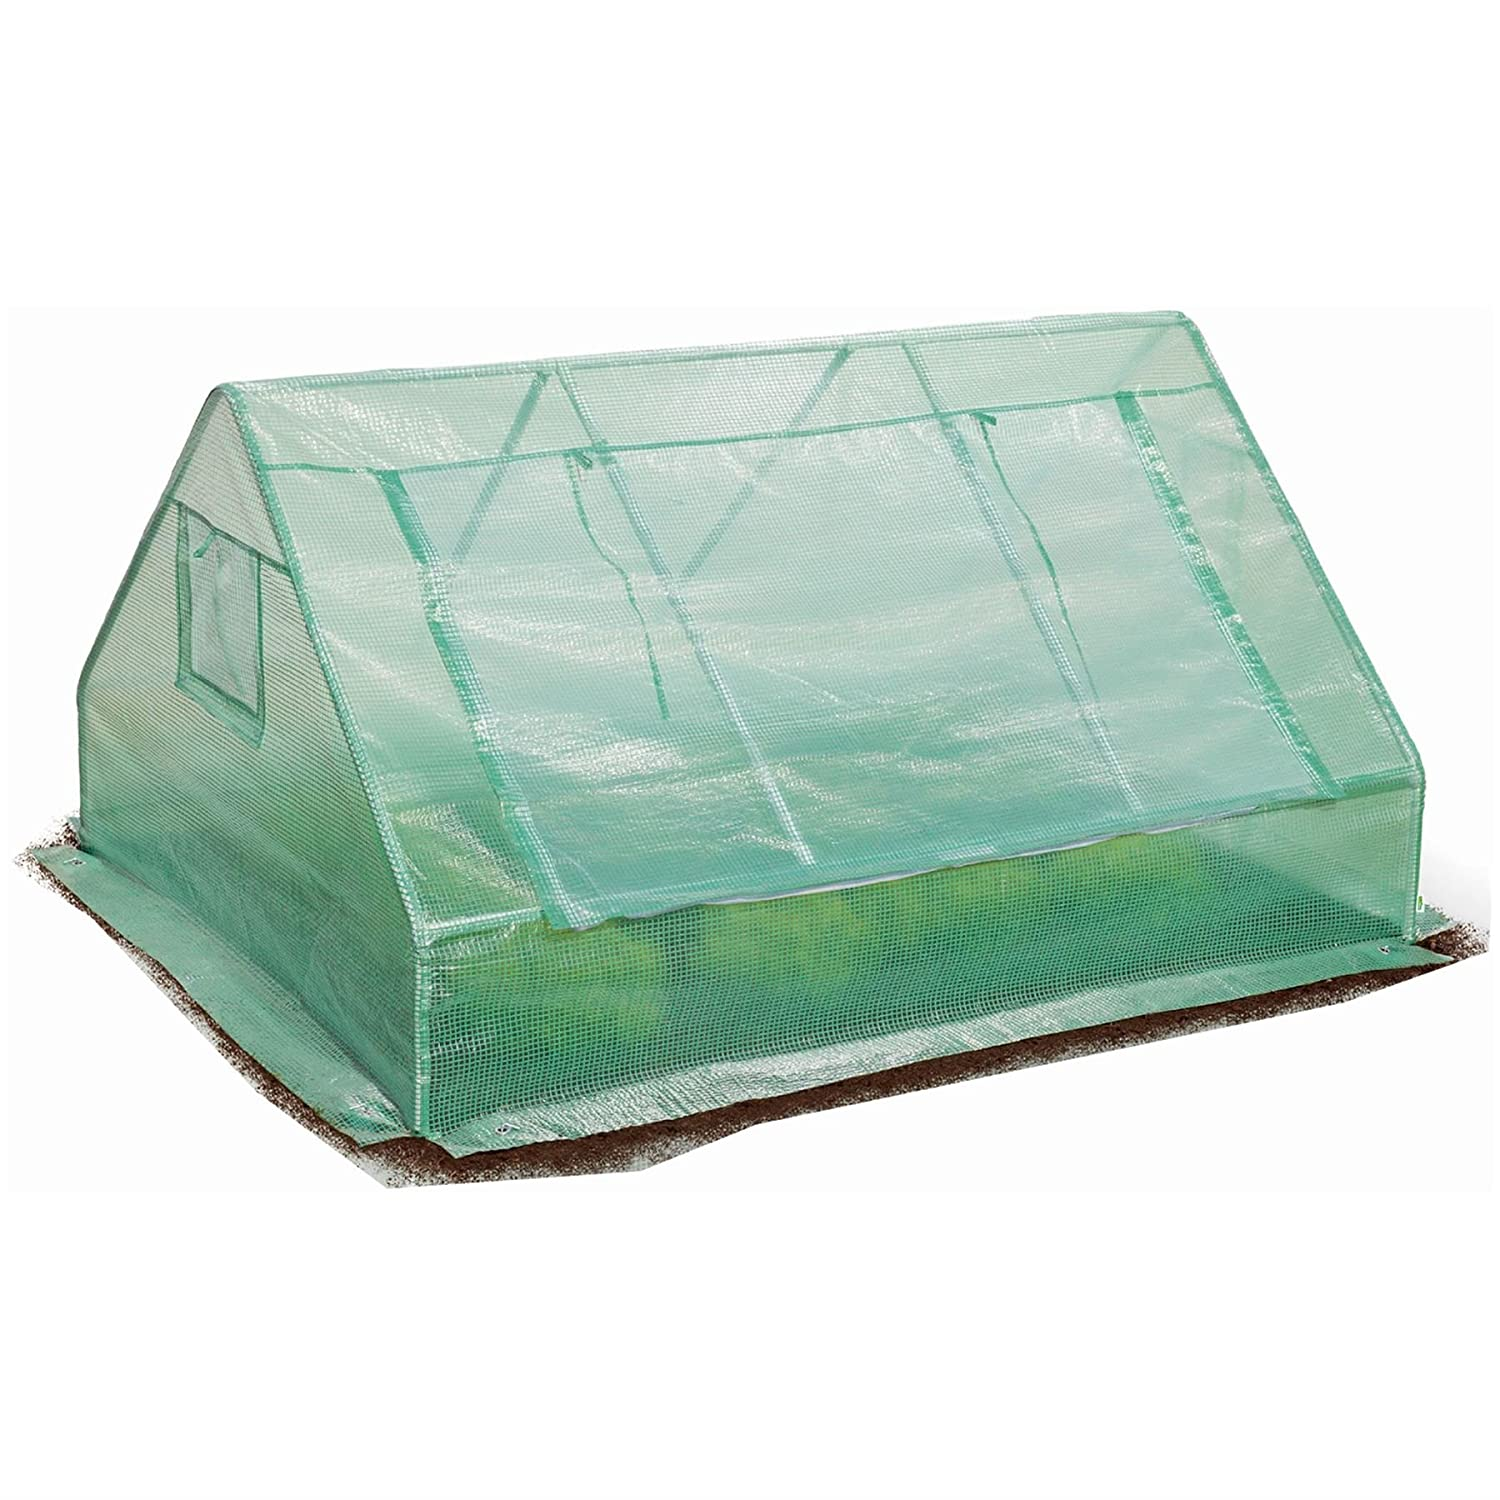 Harbour Housewares Large Ground Vegetable Greenhouse/Growbag With Strong Reinforced Cover & Side Ventilation